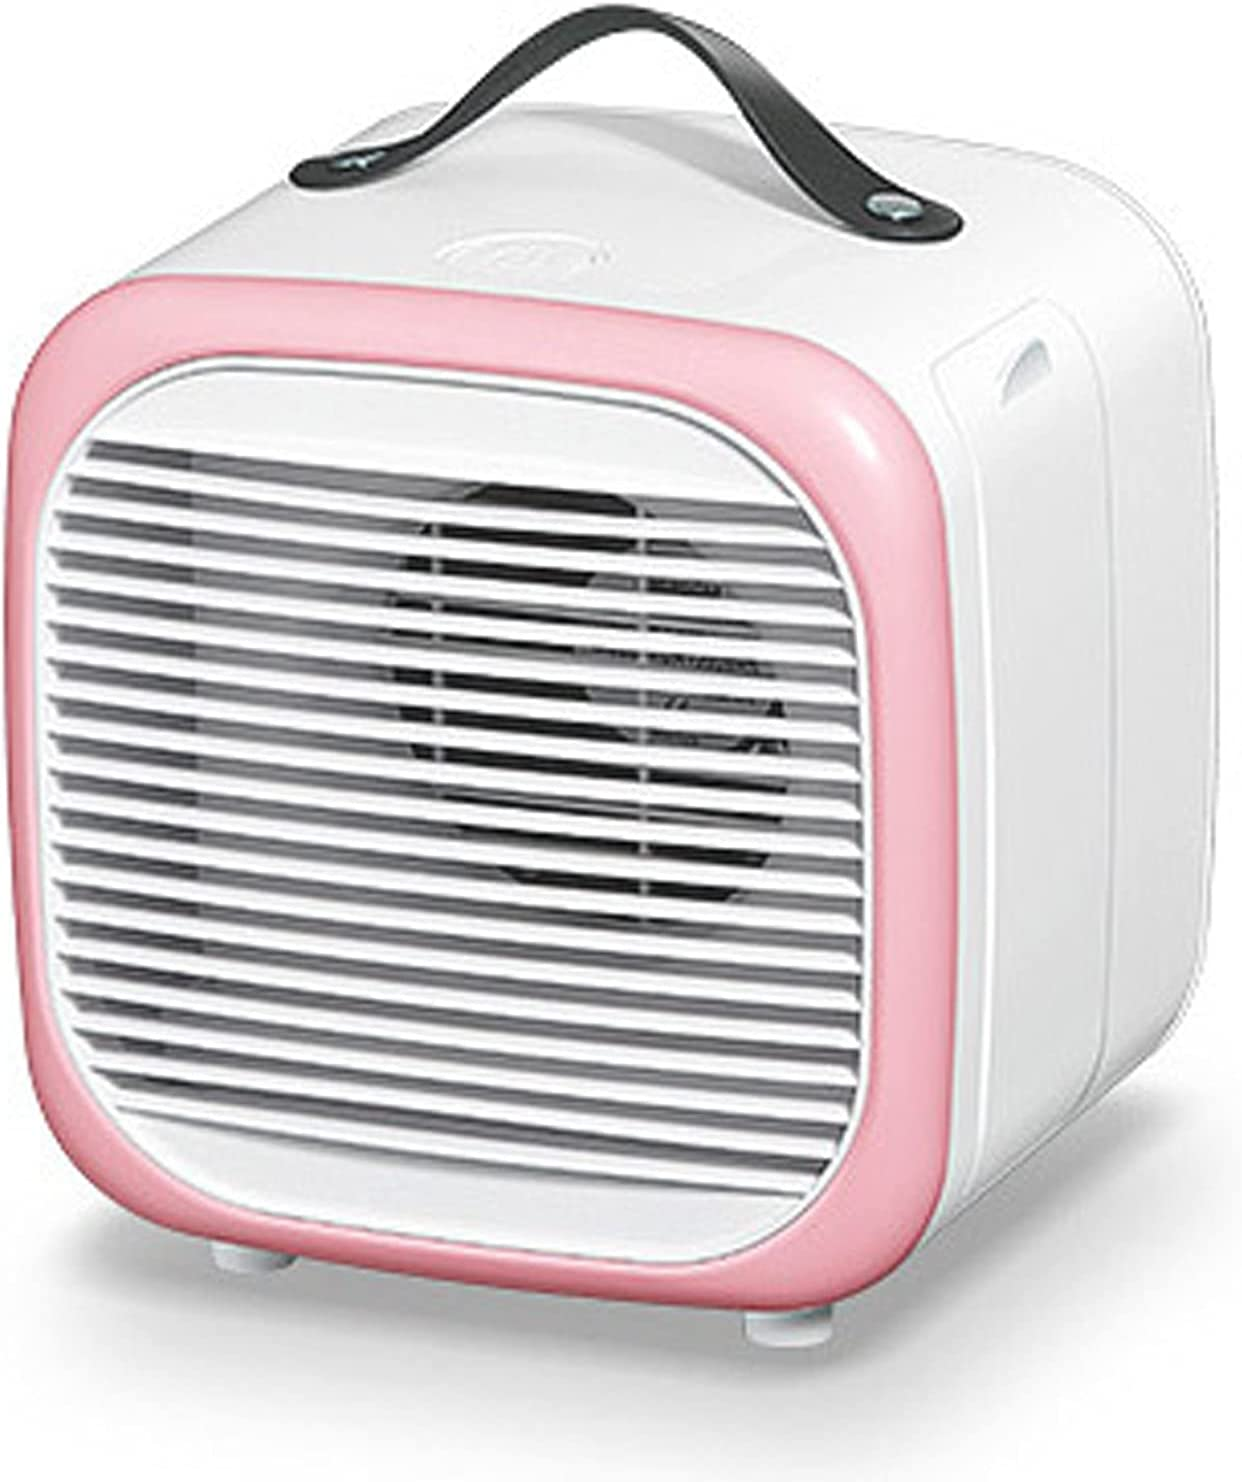 KILOL Indianapolis Mall Portable Mini Air Conditioning Fan Max 79% OFF Cooler Multifunctional